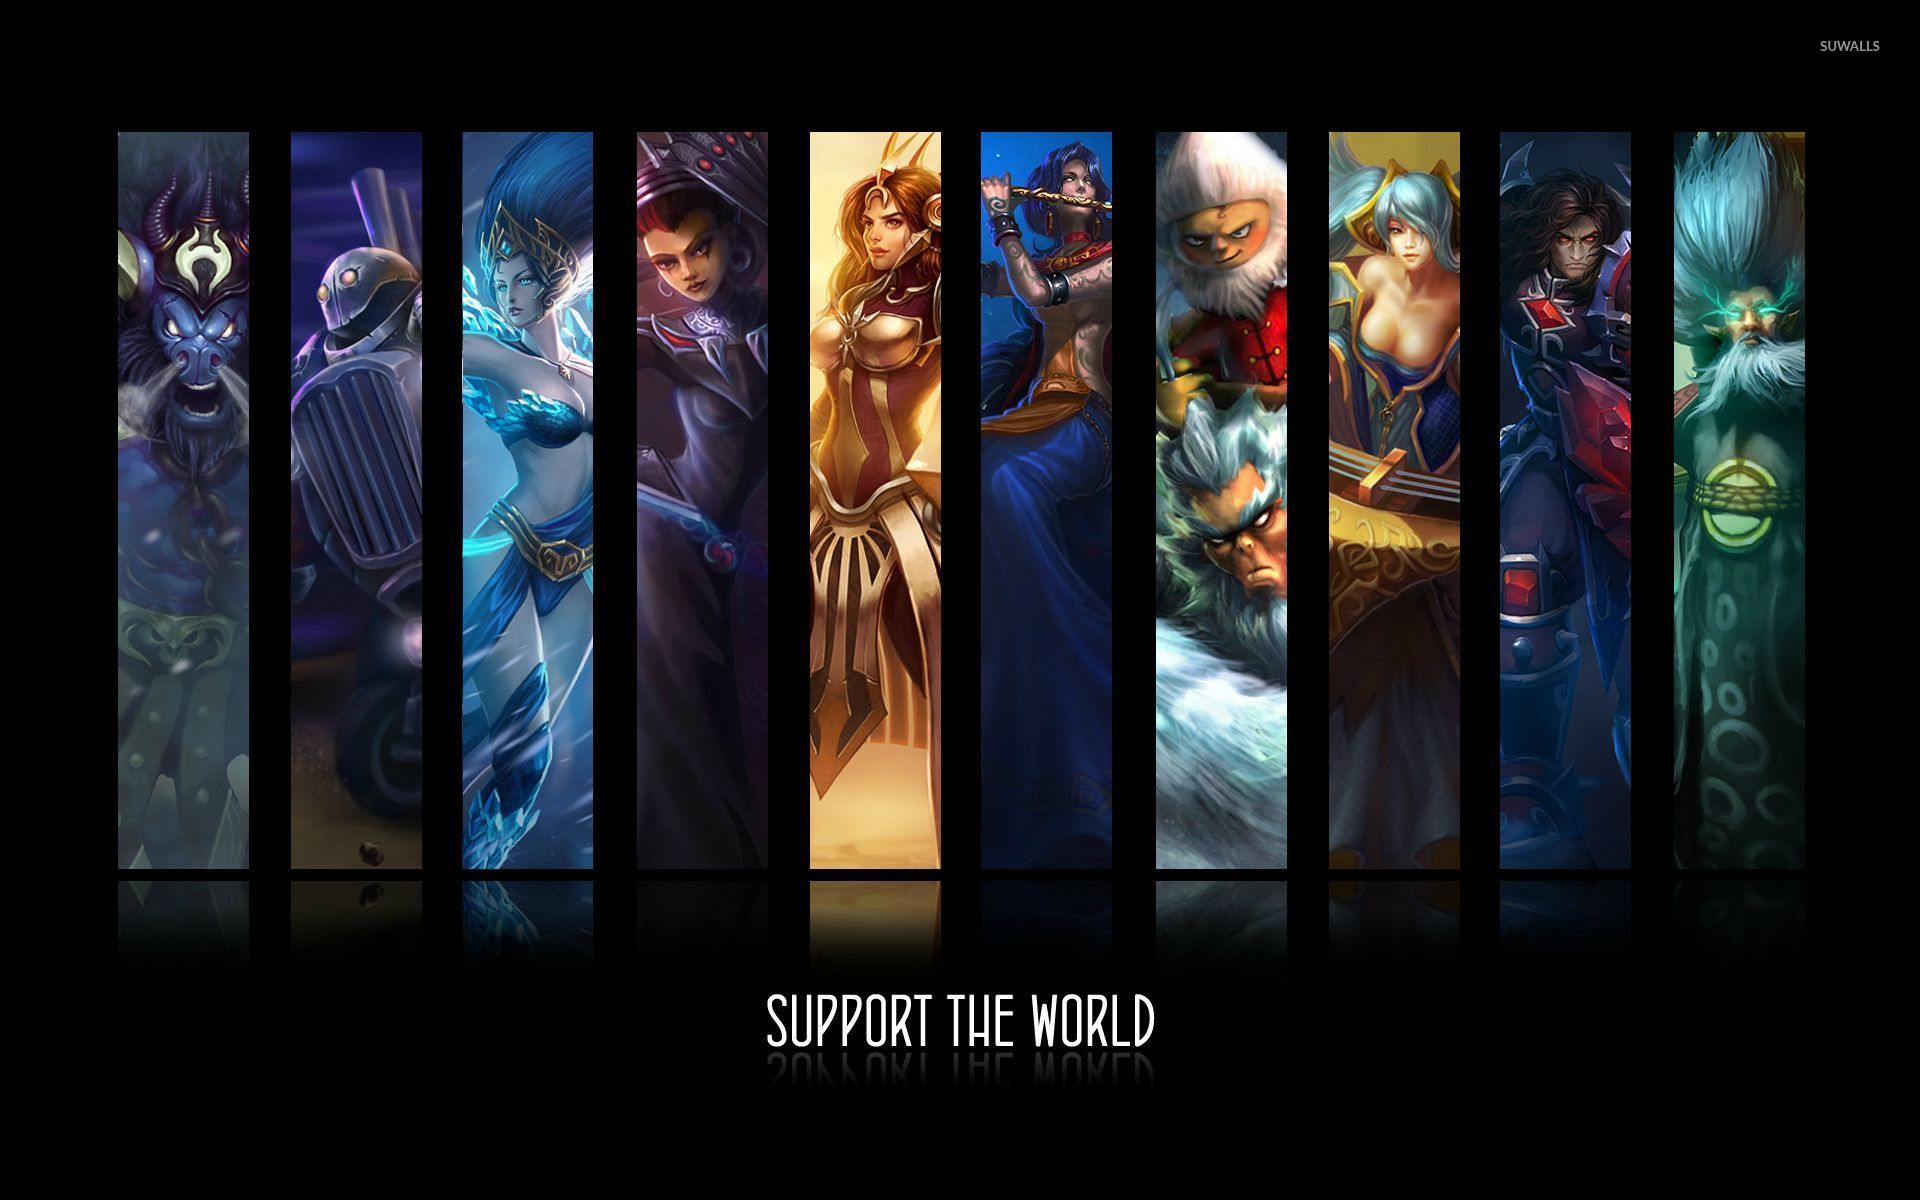 League Of Legends 6 Wallpaper Game Wallpapers 26425